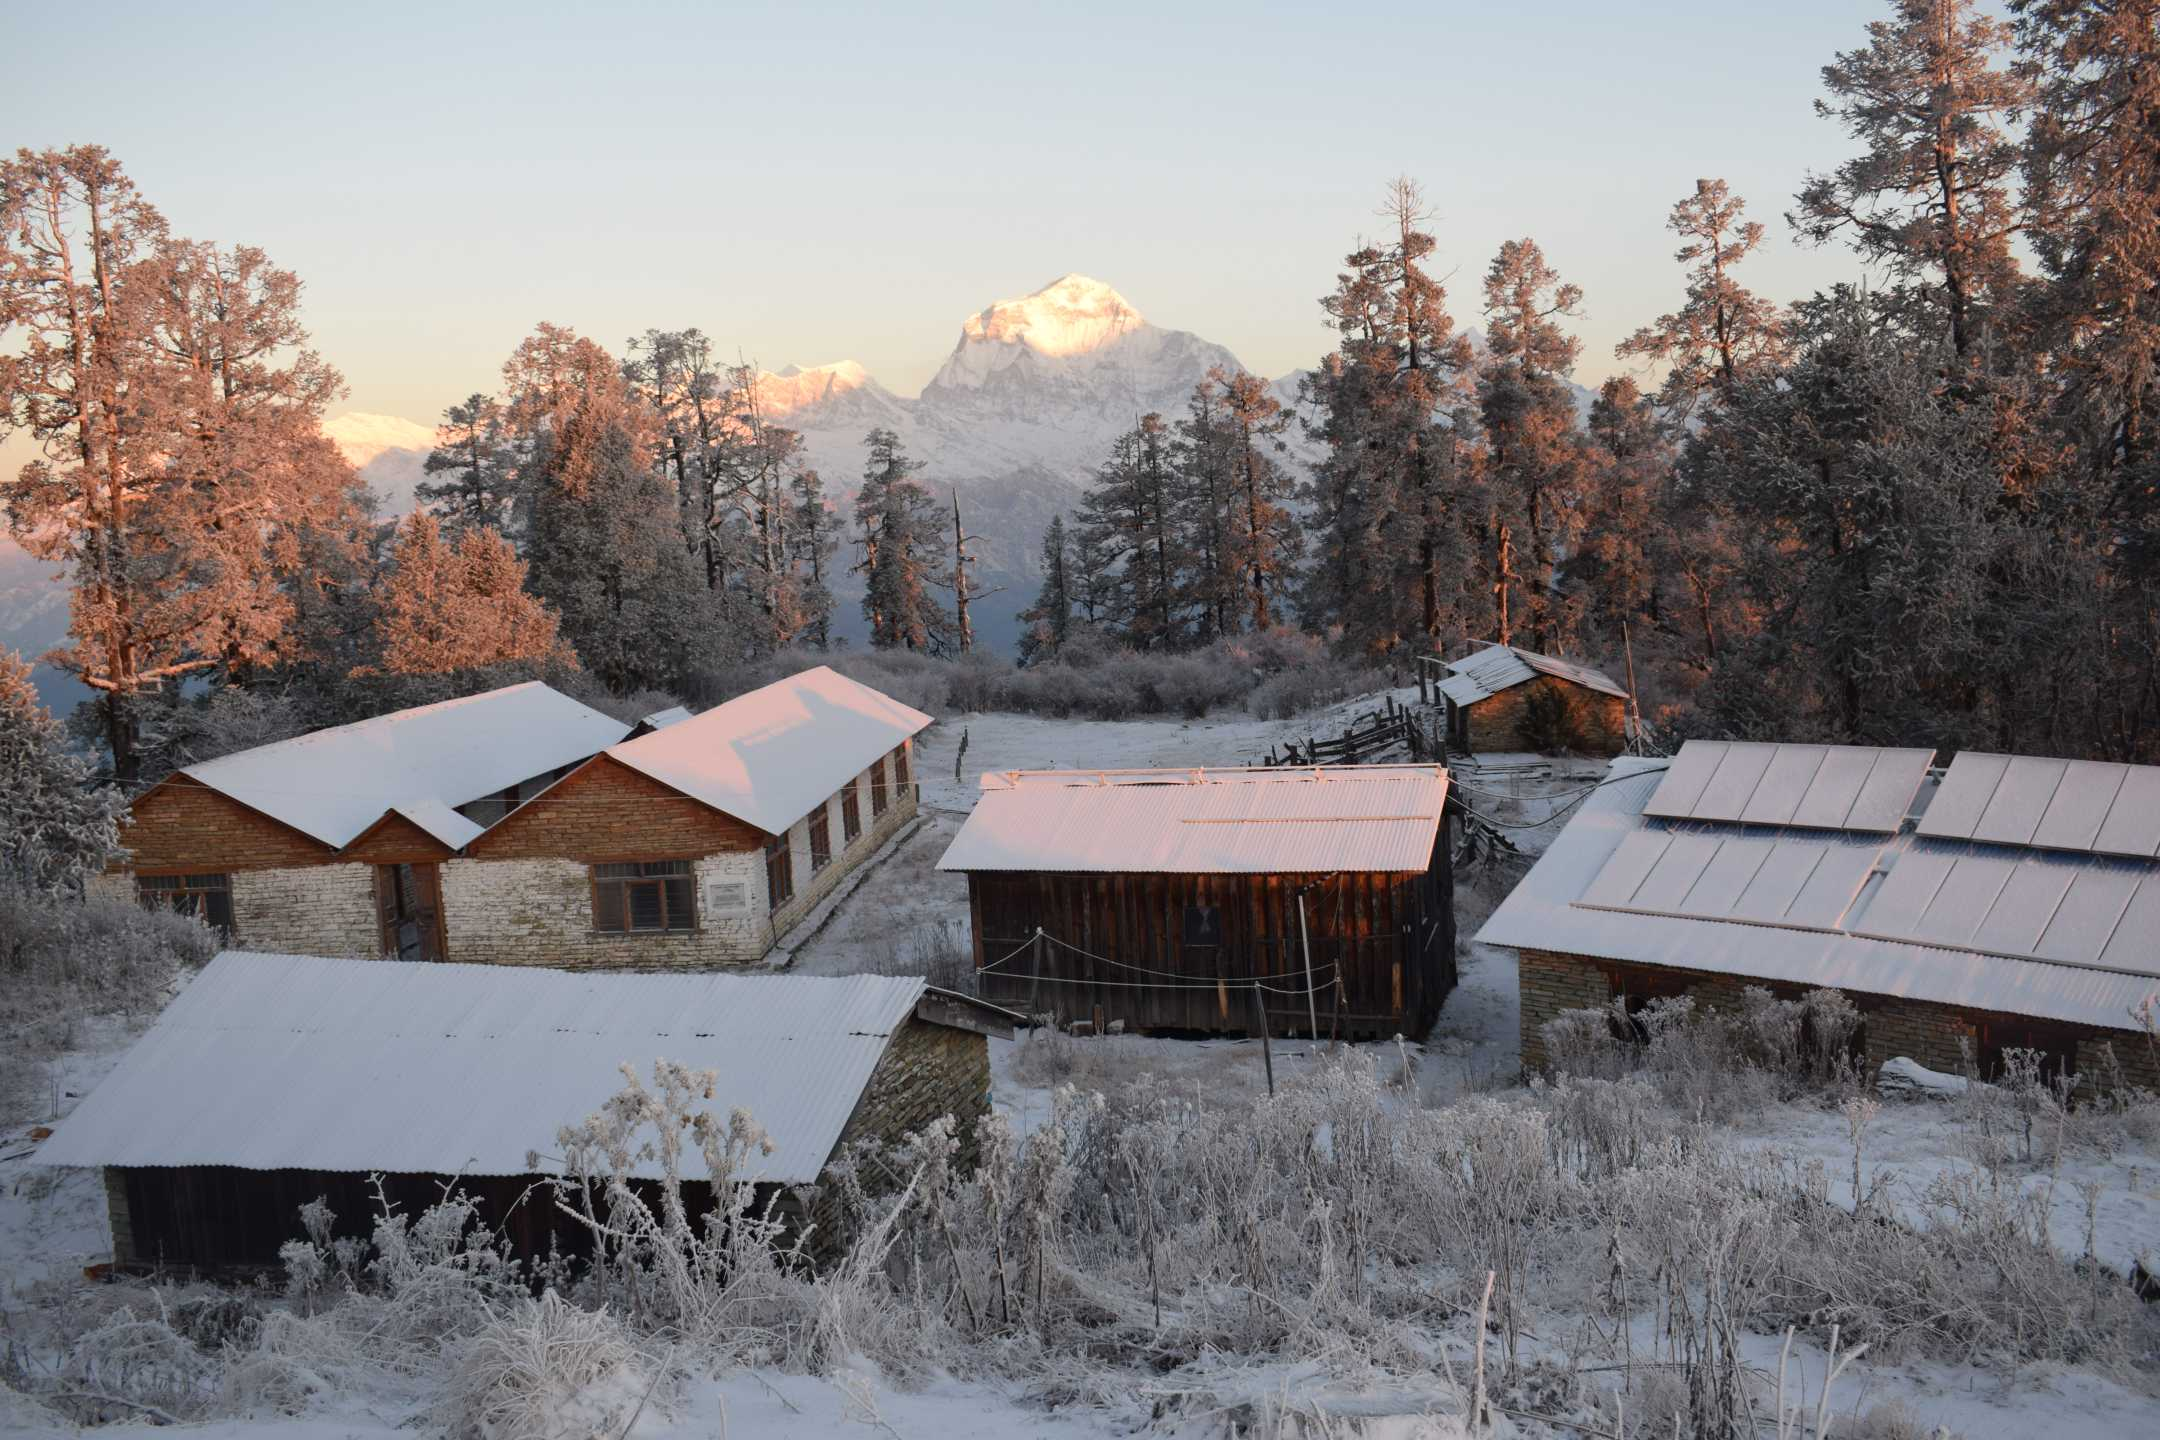 Snow covered roofs!! a typical village setting in the Annapurna Region